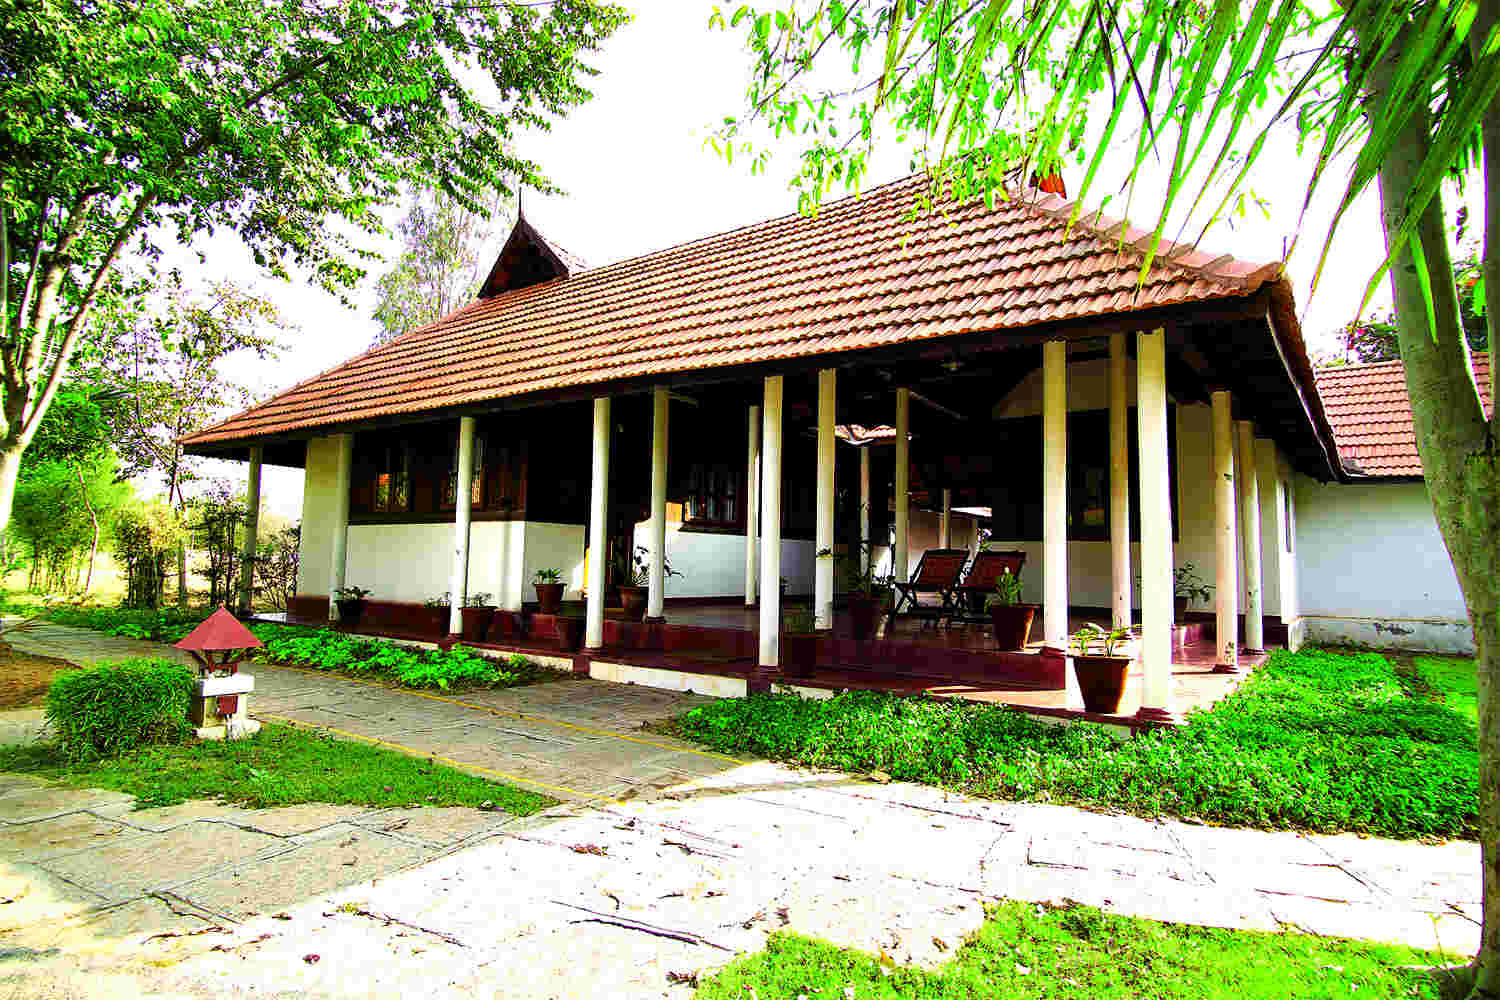 Brickcart blog kerala architecture has been bangalore 39 d for Old traditional houses